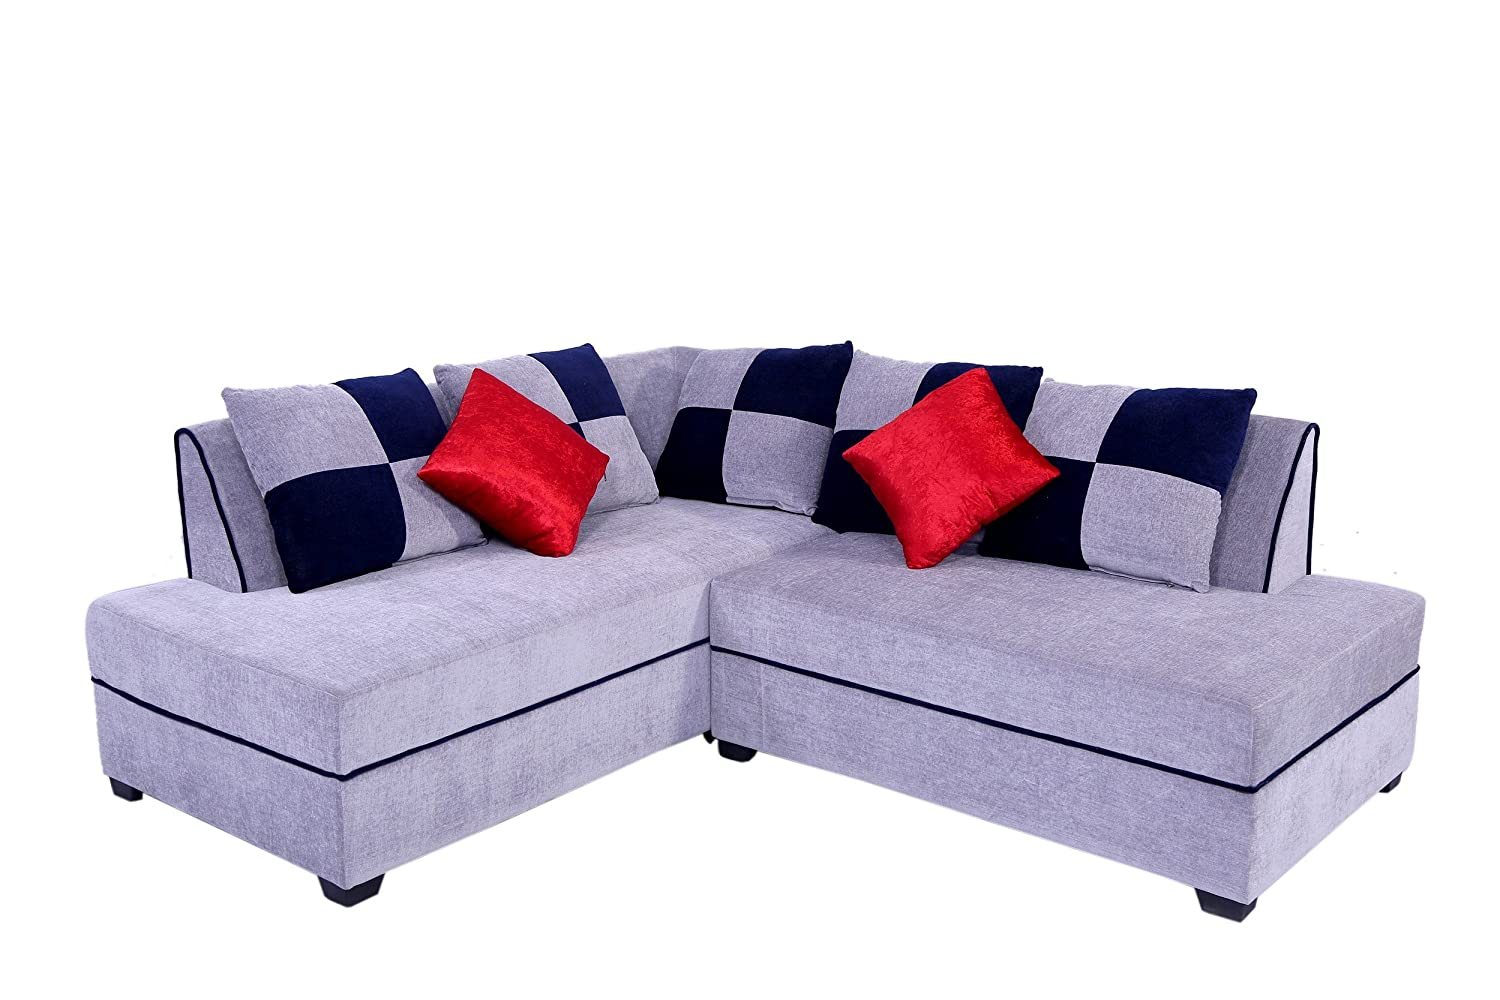 Muebles Casa Crown CASA010 Five Seater Sofa (Blue And Grey)